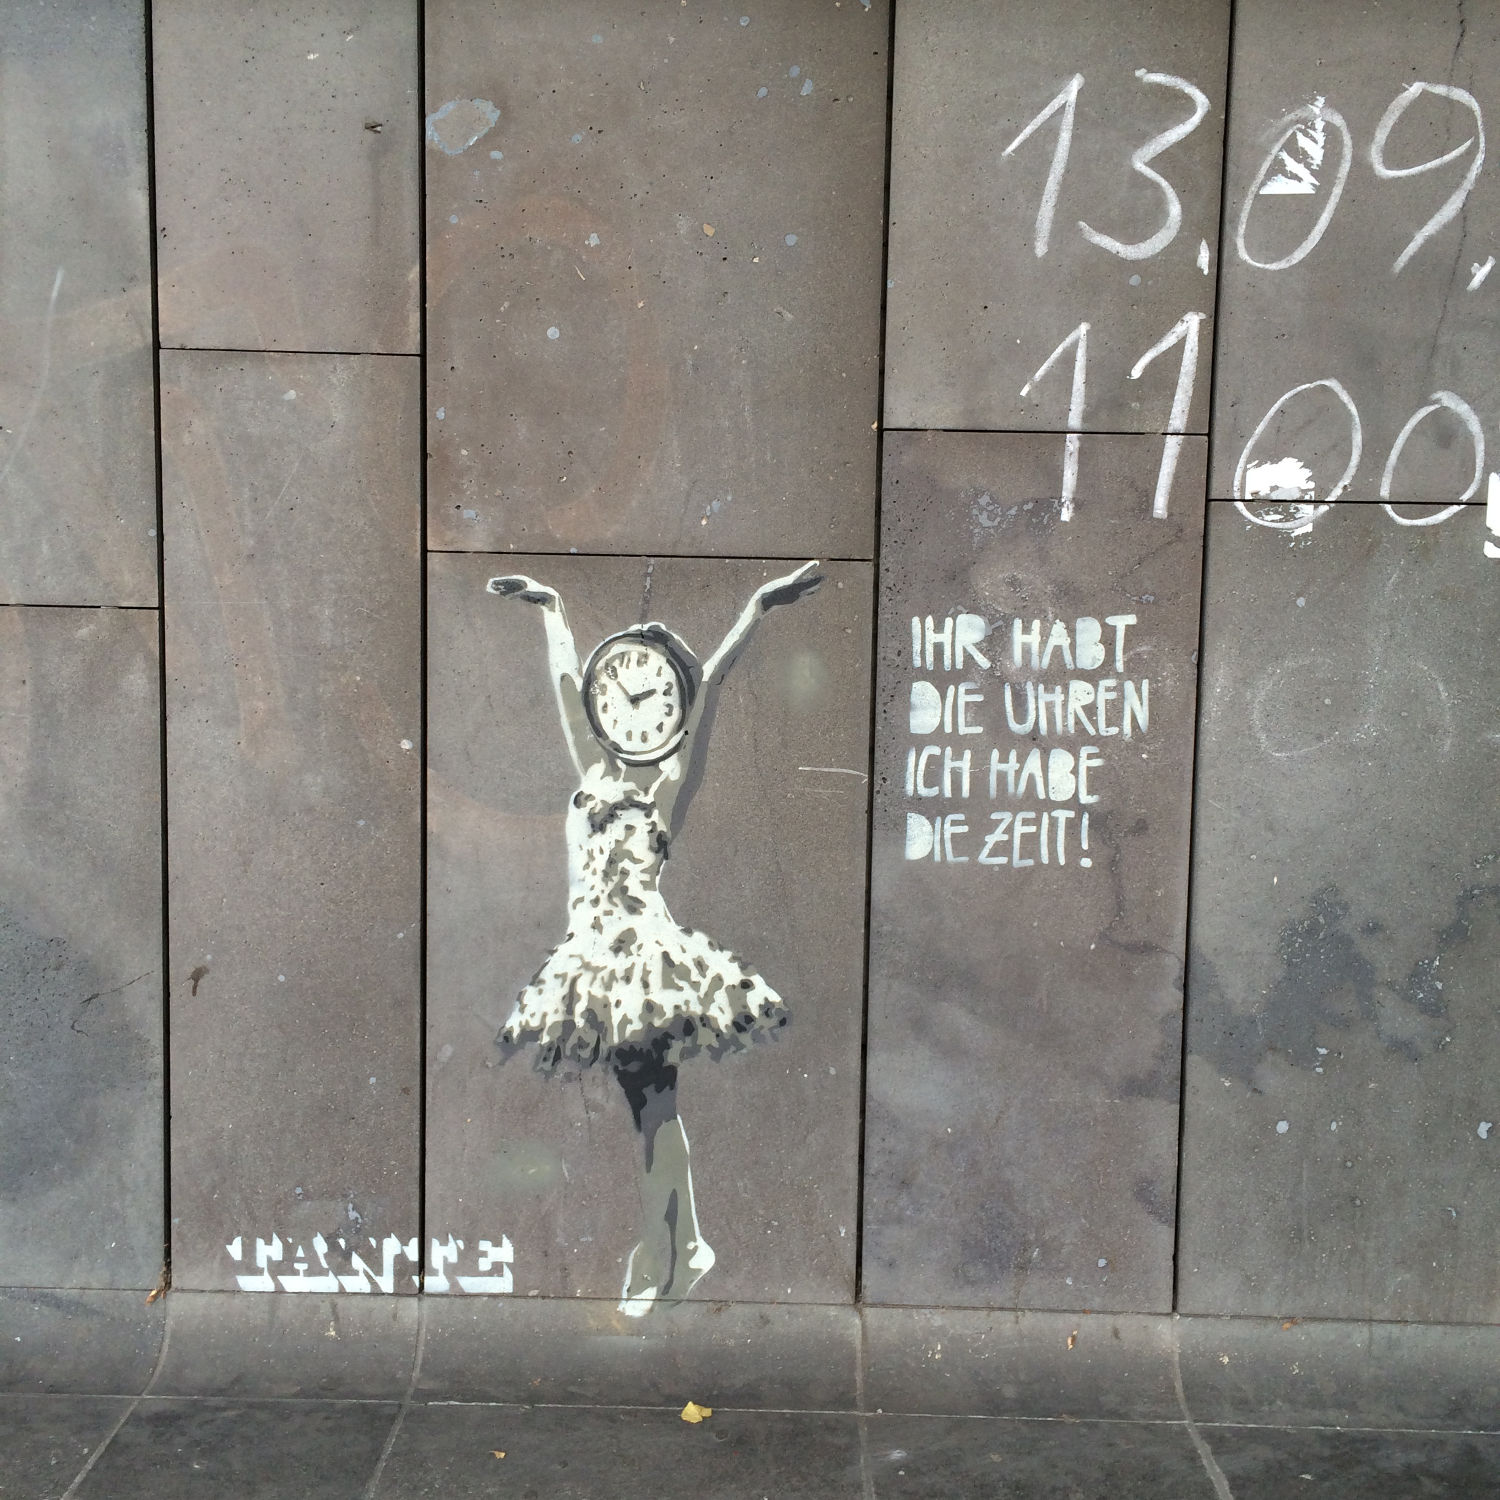 Banksy-Inspired Street Art in Berlin